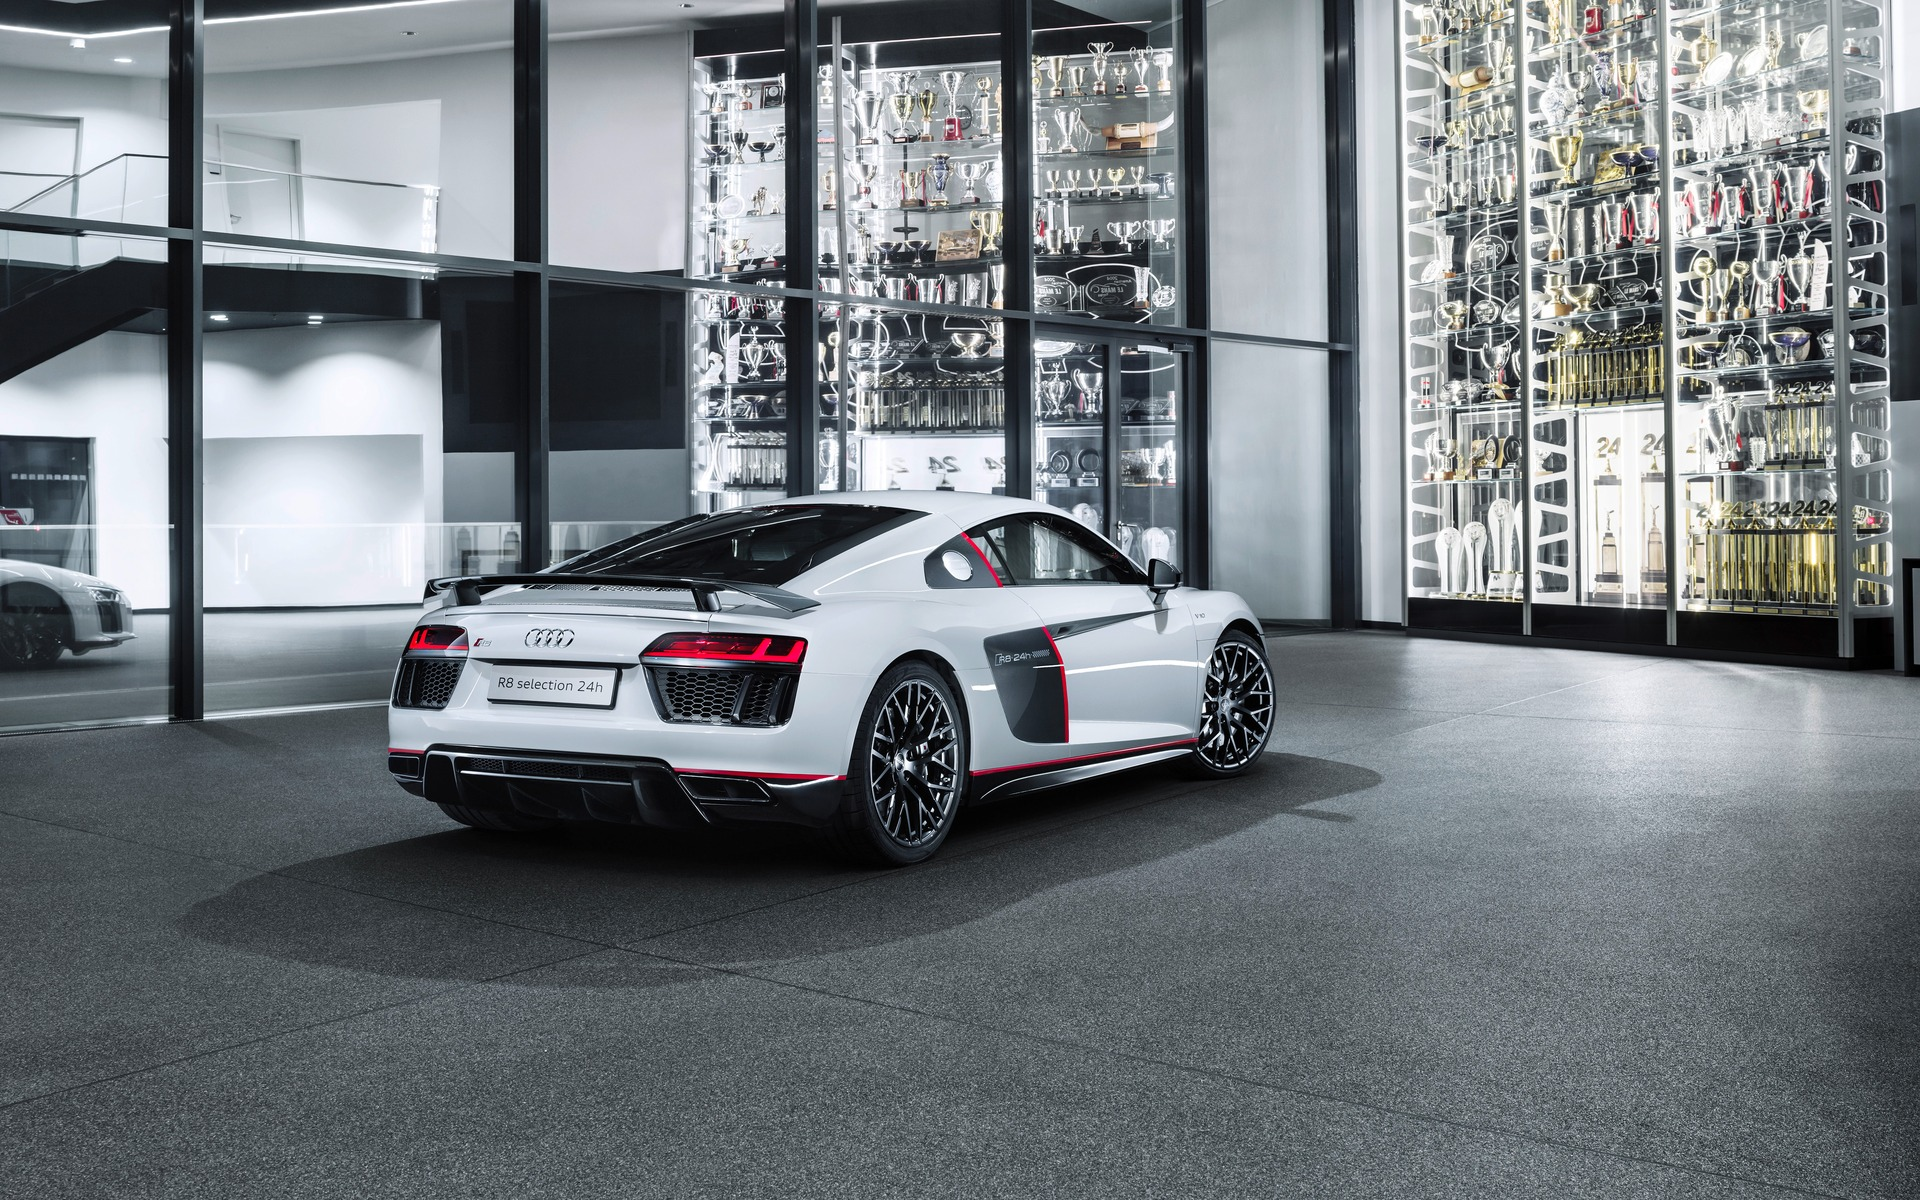 2018 Audi R8 V10 Coupe Specifications The Car Guide